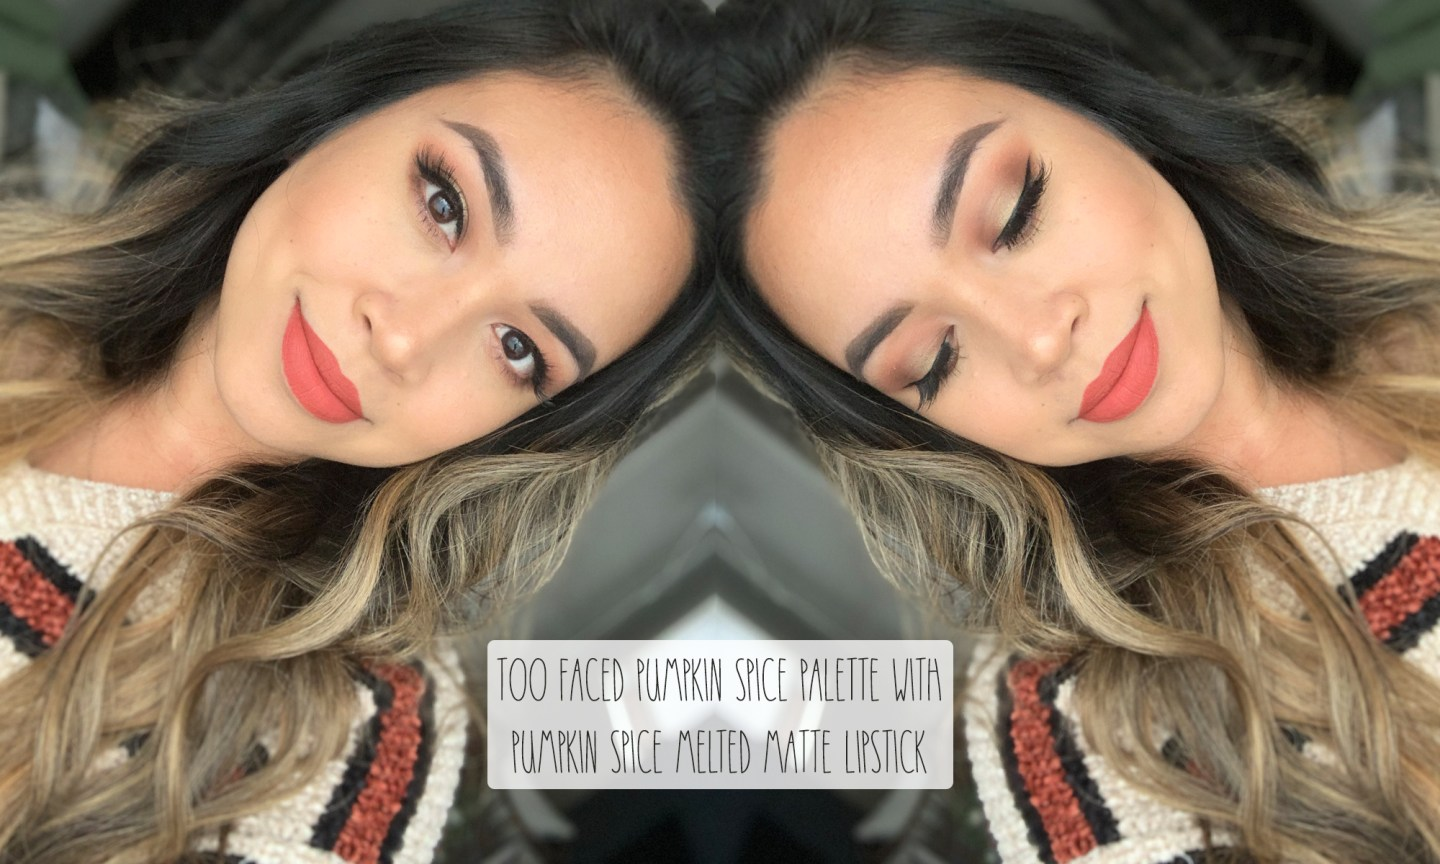 too faced pumpkin spice palette and lipstick